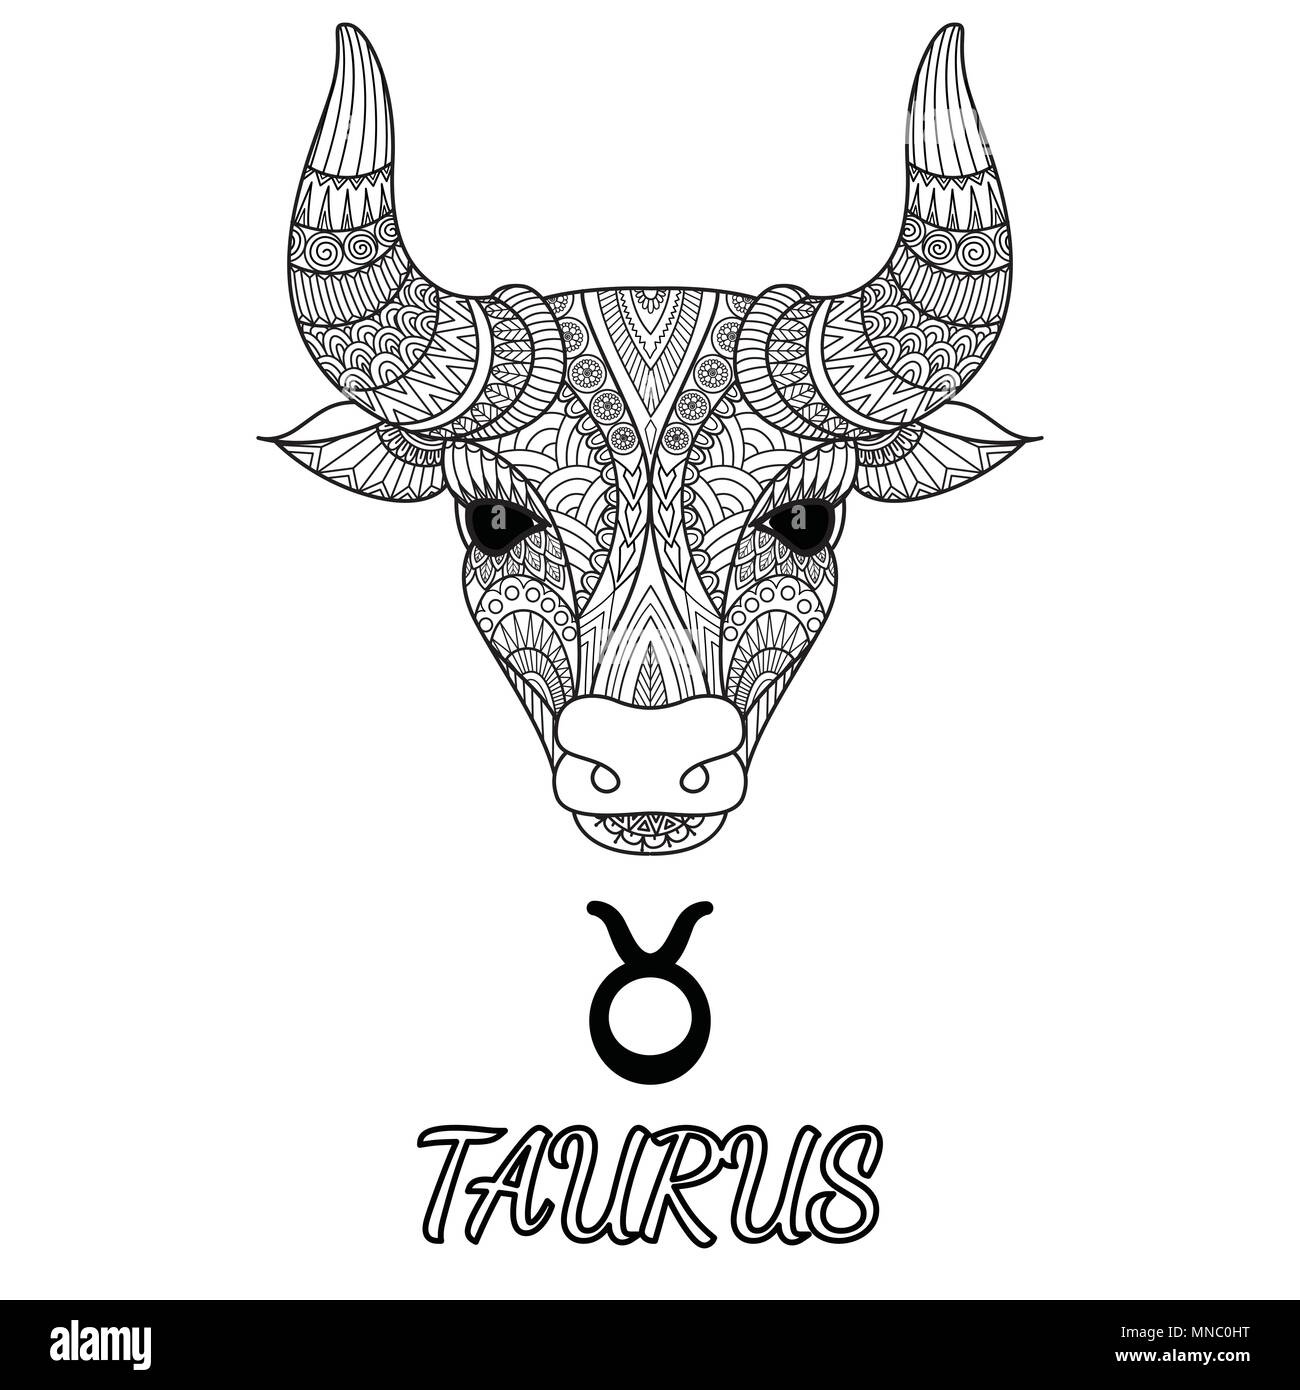 Zendoodle design of Taurus zodiac sign for design element and adult coloring book page. Vector illustration - Stock Image